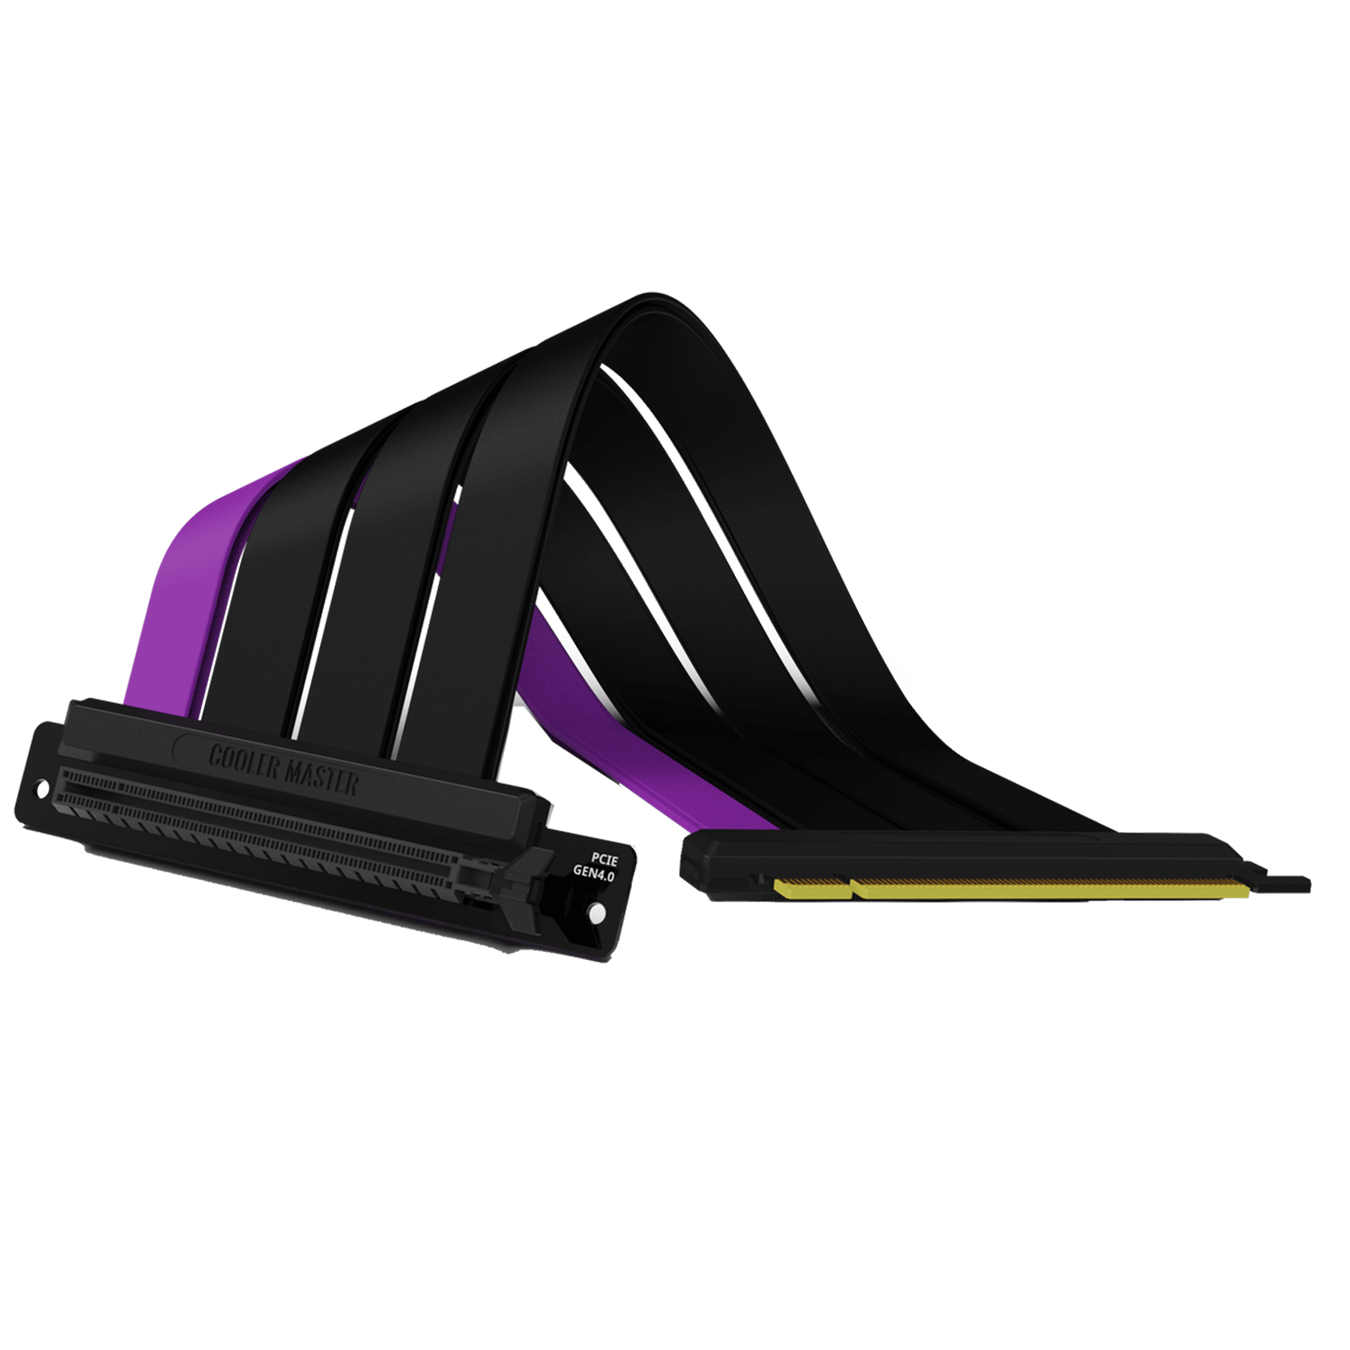 Front view of the folded Cooler Master MasterAccessory PCIe 4.0 Riser Cable with three matte black cables and a single purple accent cable.